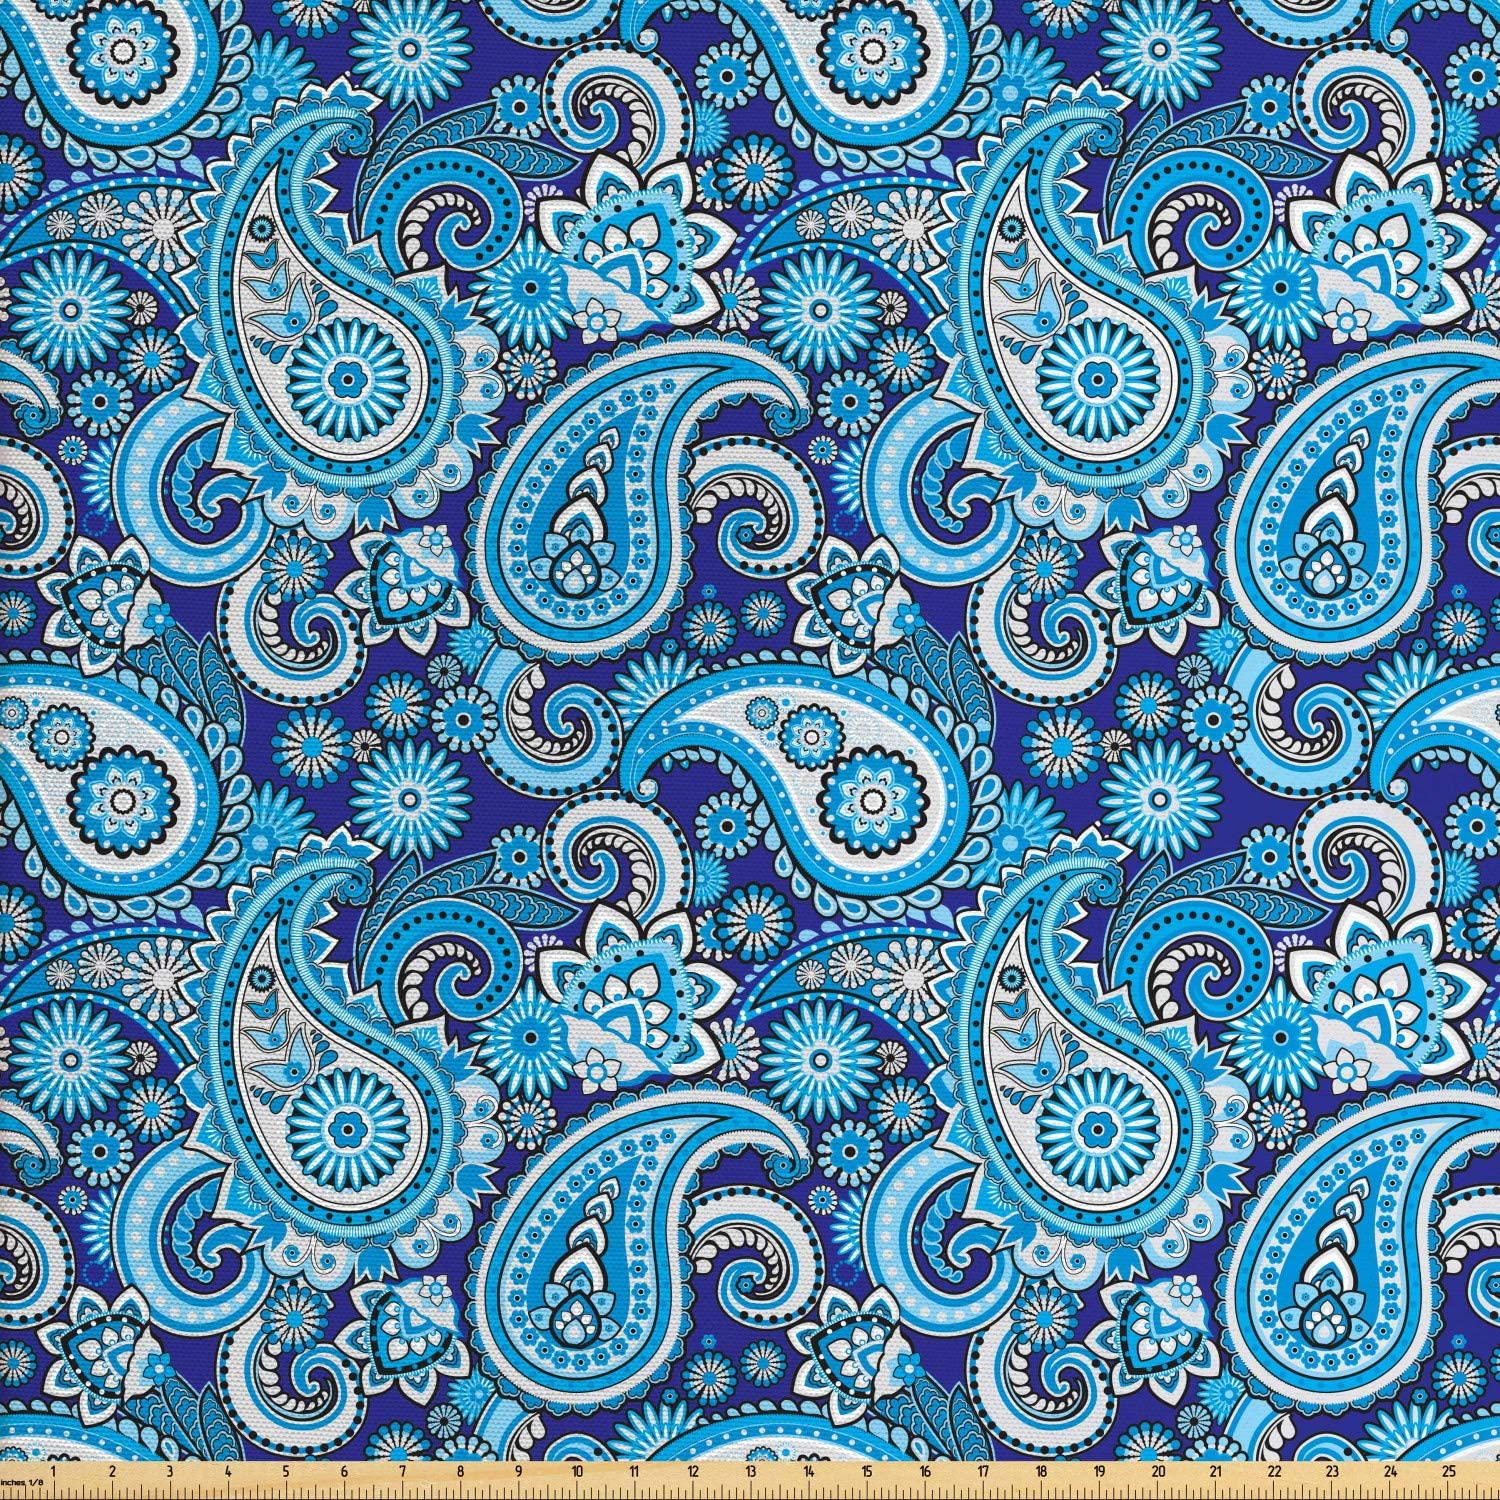 Ambesonne Paisley Fabric by The Yard, Traditional Pattern Design Flowers Leaves and Dots Backgrounded Artwork Print, Decorative Fabric for Upholstery and Home Accents, 1 Yard, Aqua Blue